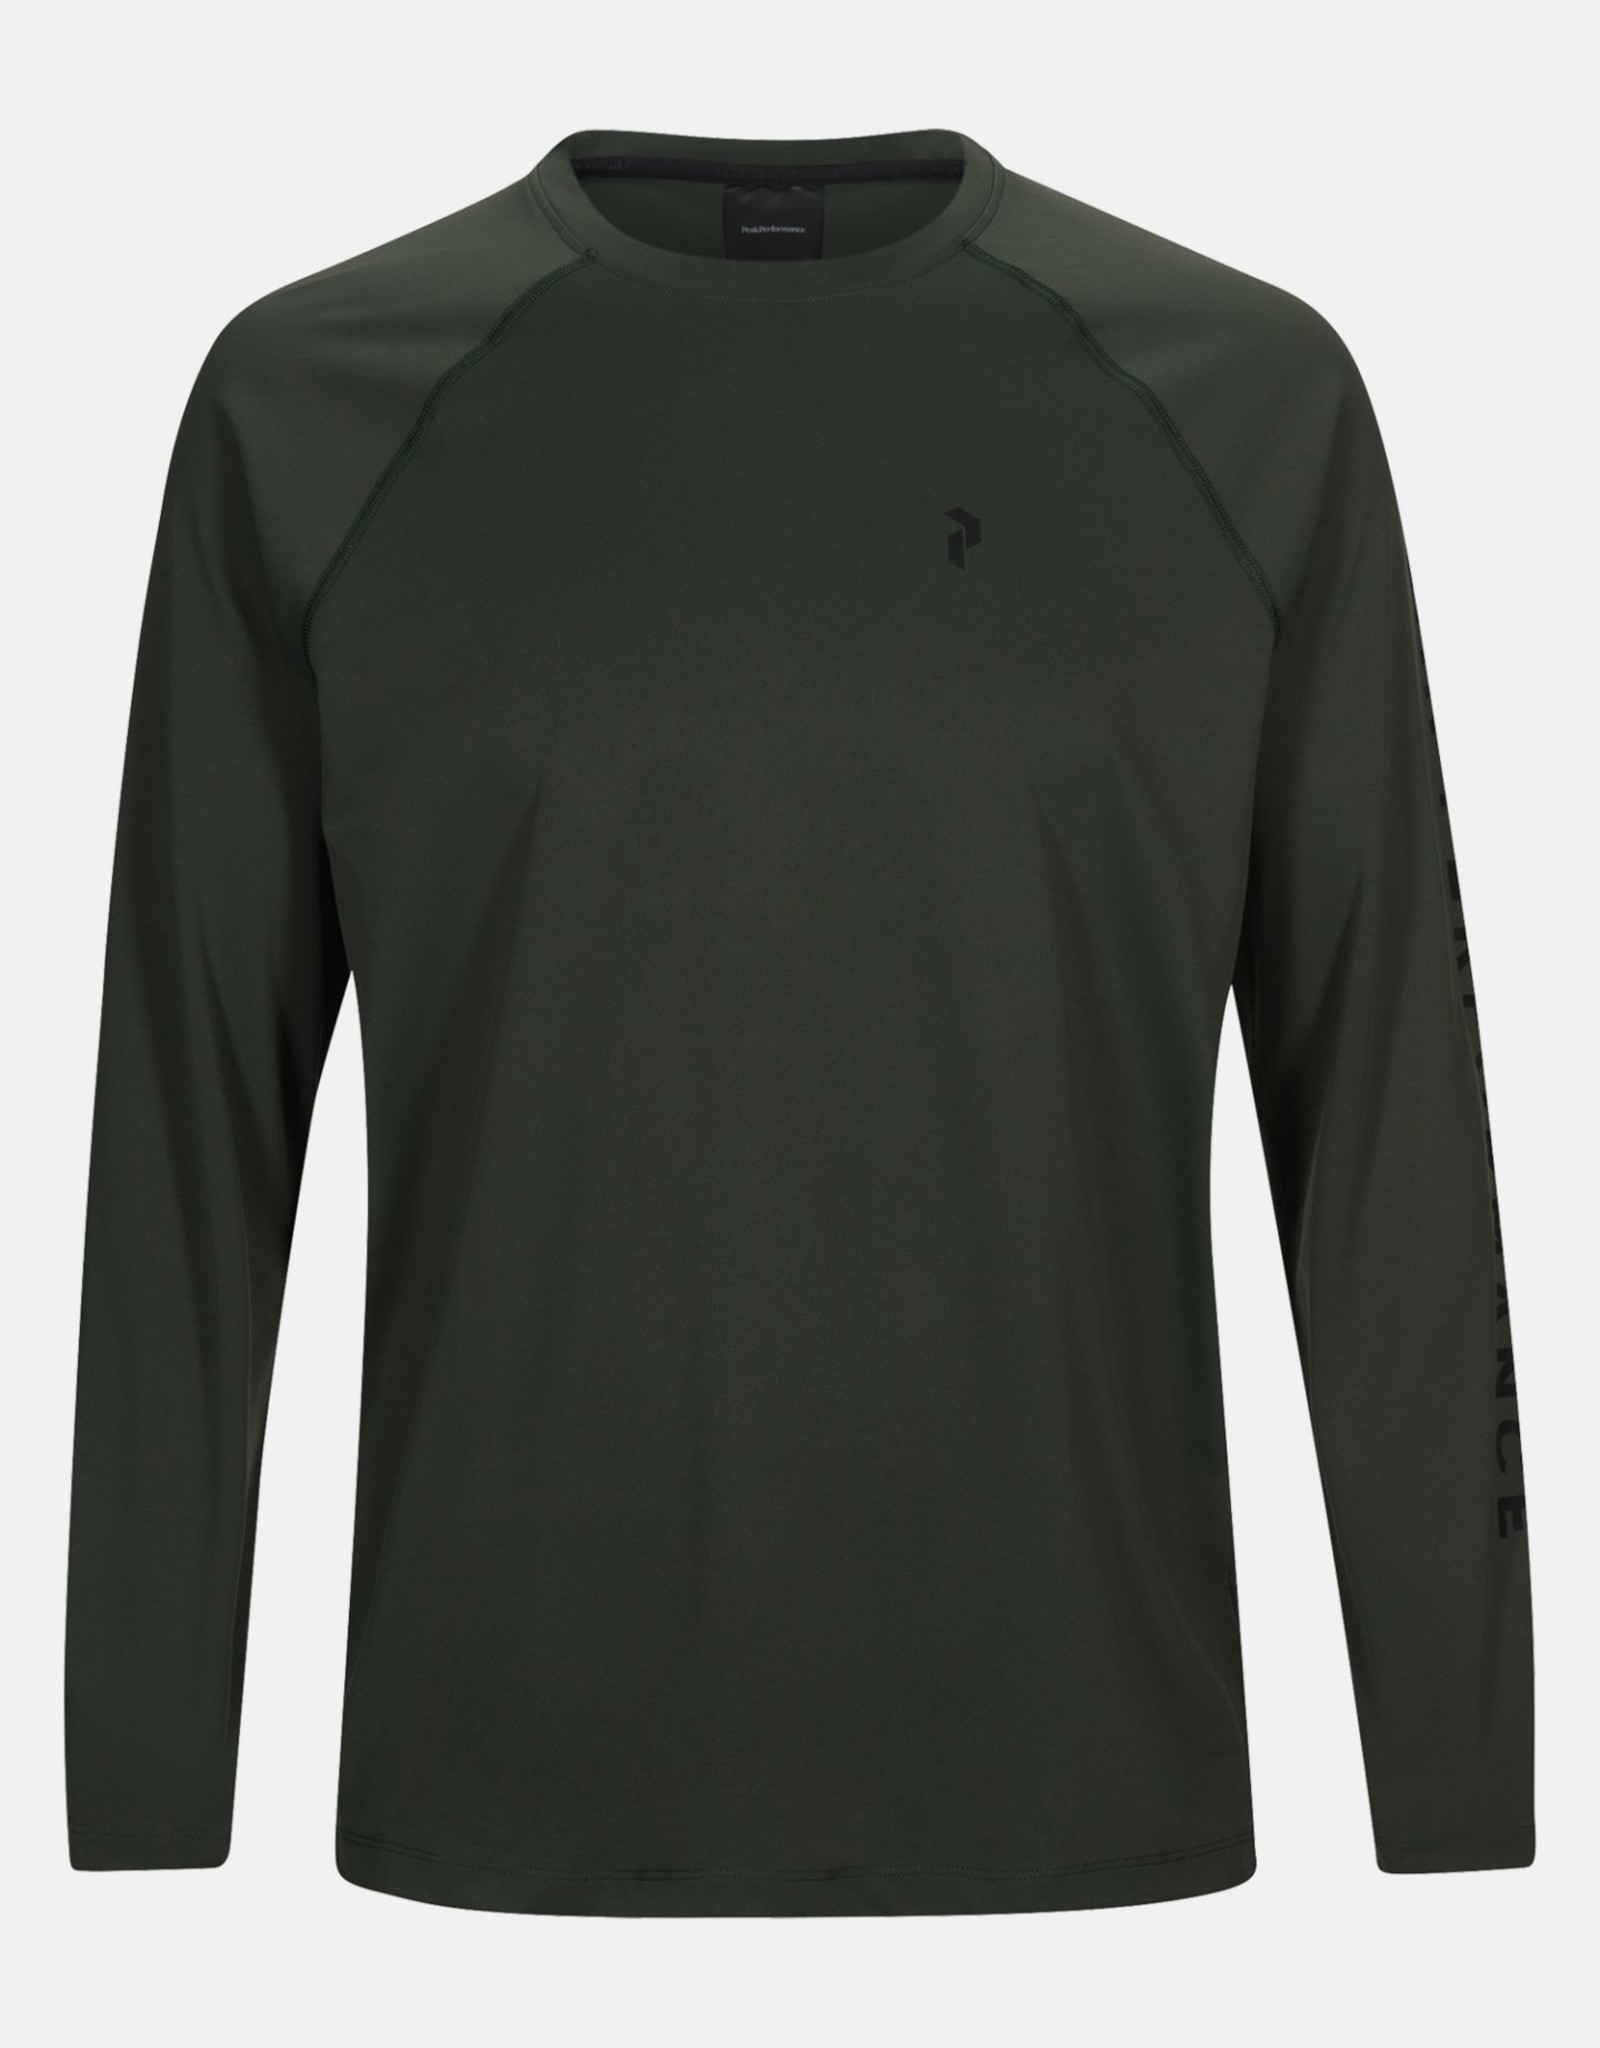 Peak Performance Peak Performance Men's Pro CO2 L/S - S2020